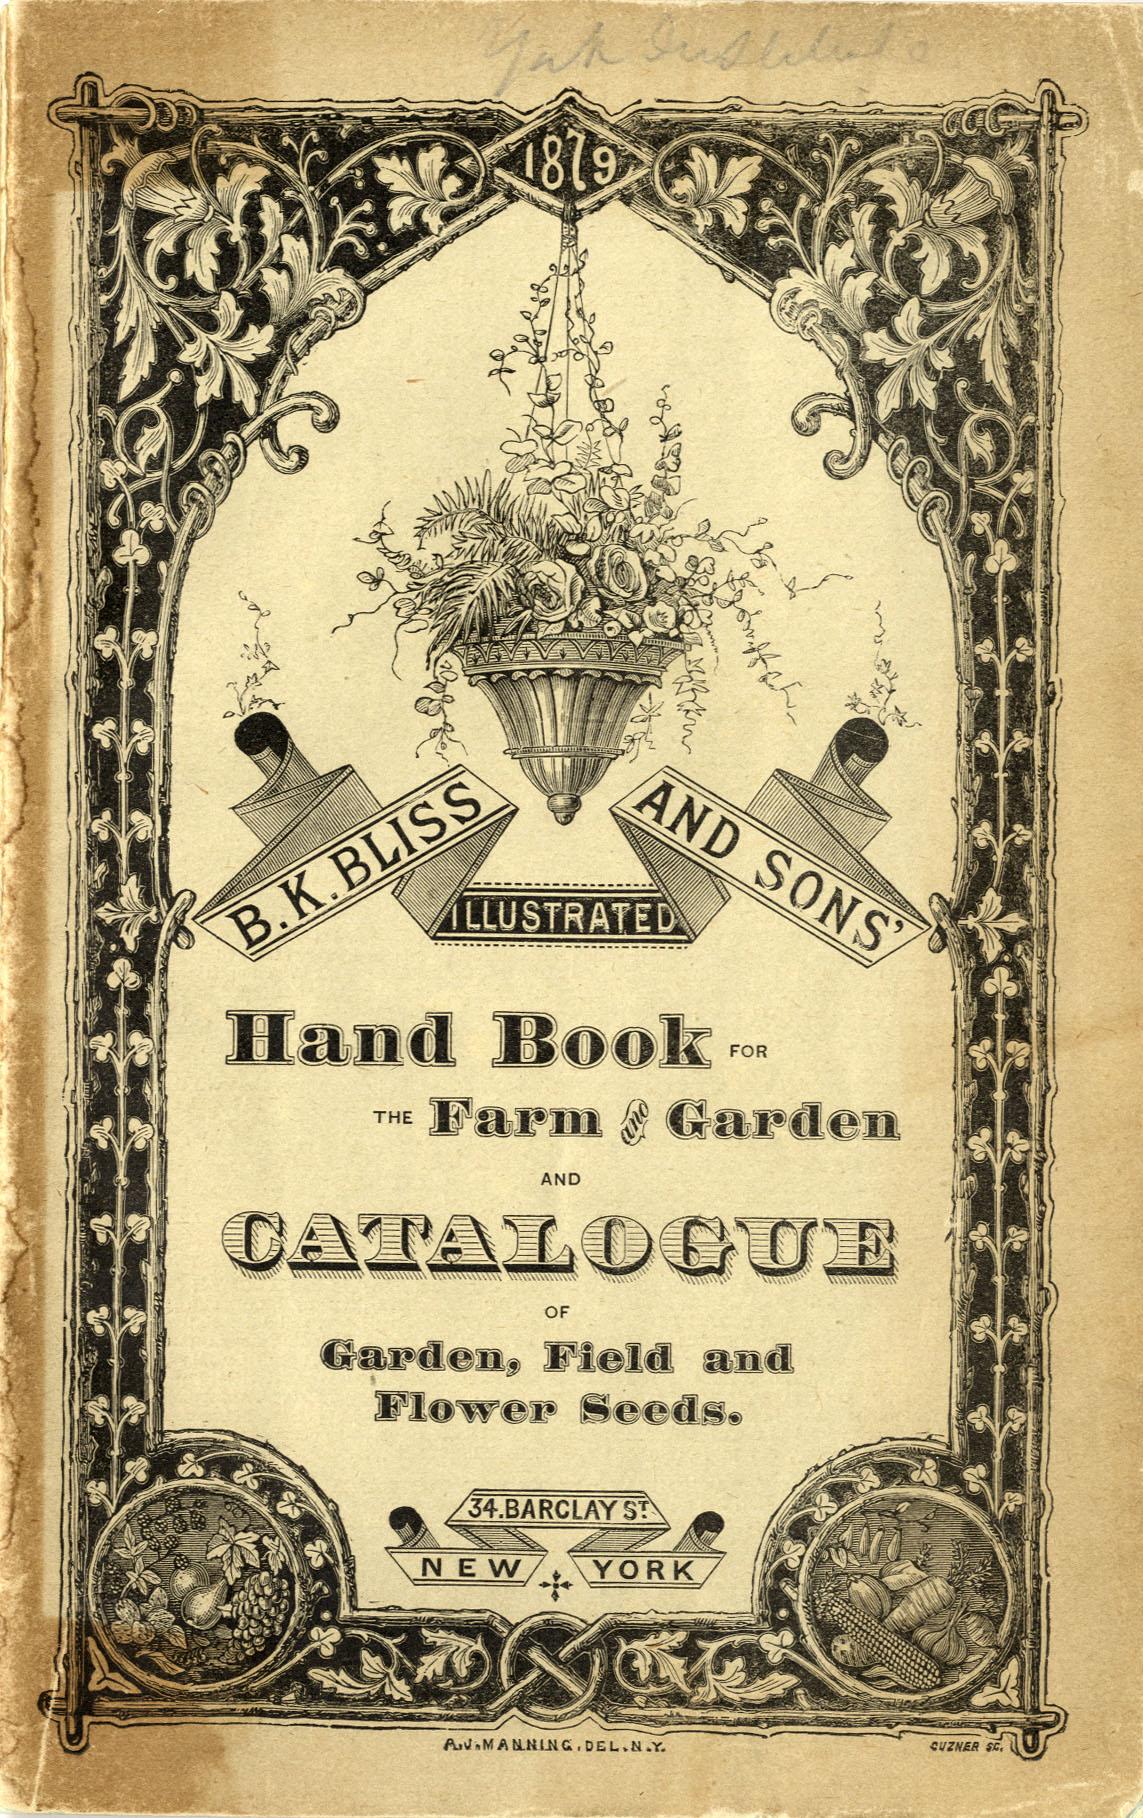 The B. K. Bliss And Sons Seed Catalog Of 1879. [Courtesy Of The American  Antiquarian Society]